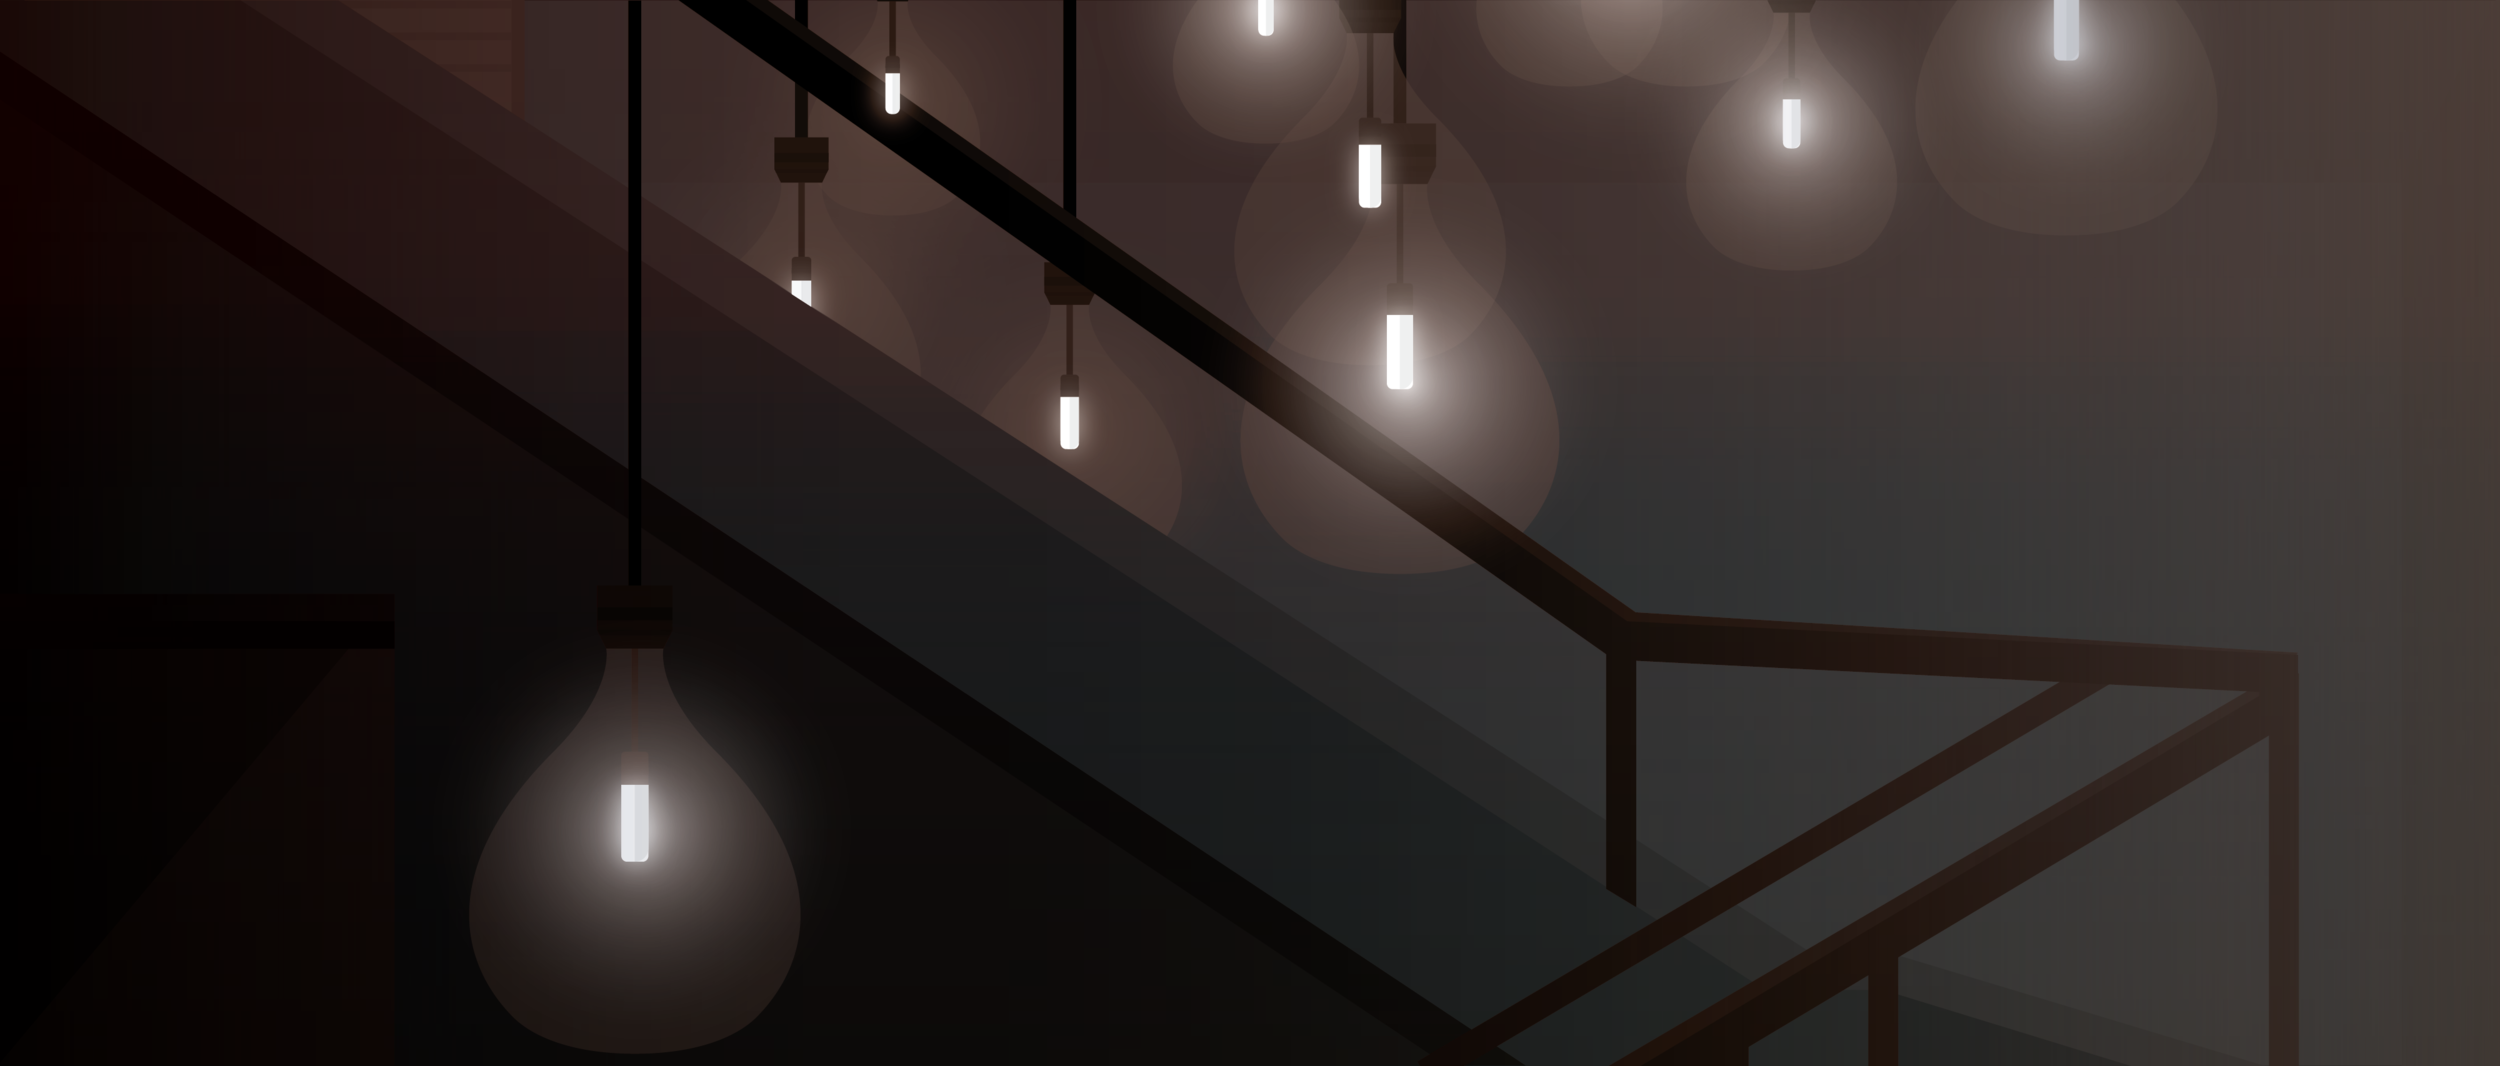 CL_HolidayVideo_Environment_Staircase_00a-01.png